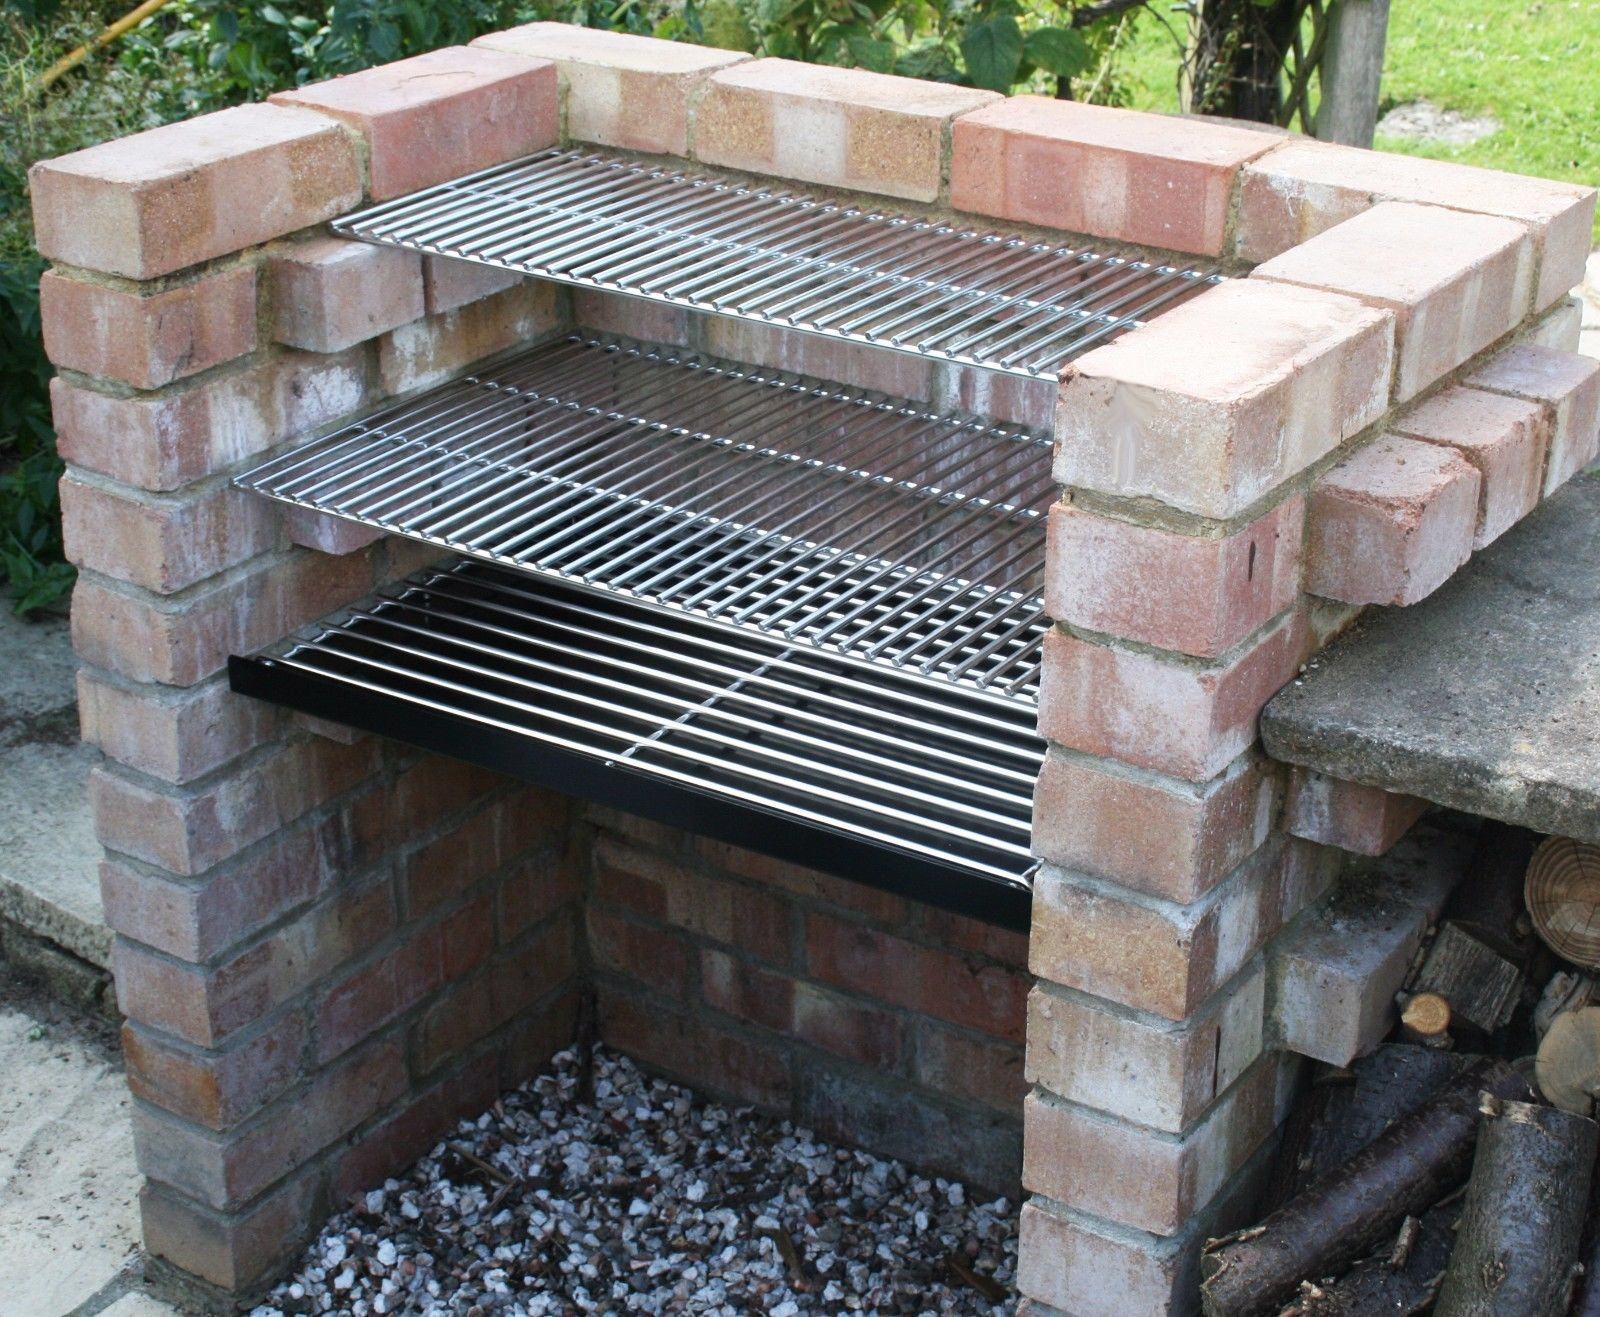 Charcoal Diy Brick Bbq Kit With 6Mm #stainless Grill & #warming Amusing Outdoor Kitchen Charcoal Grill Decorating Design